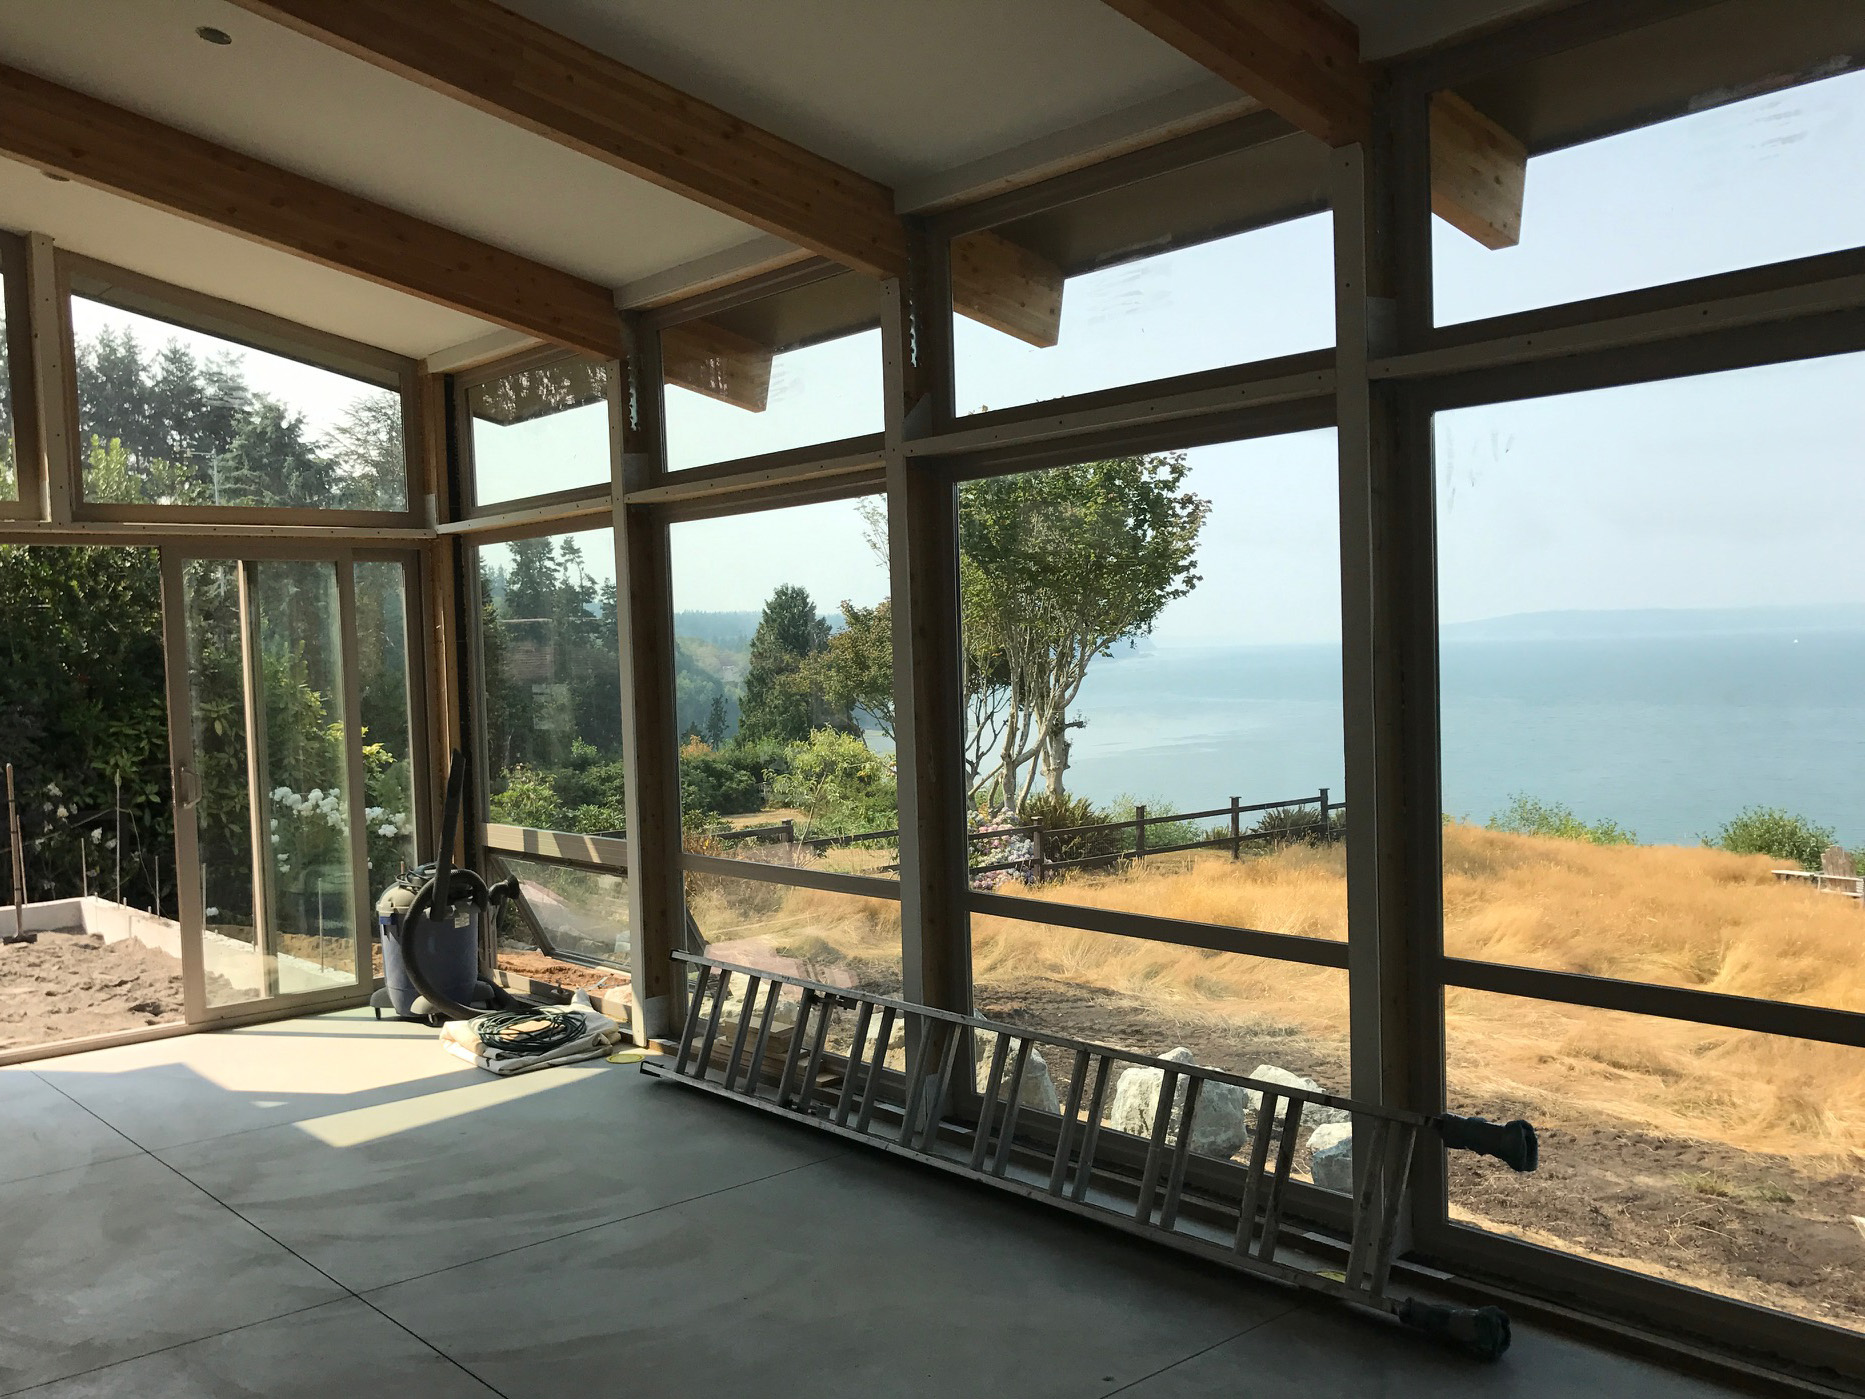 There will be no deck between this home and the view of magnificent Puget Sound...